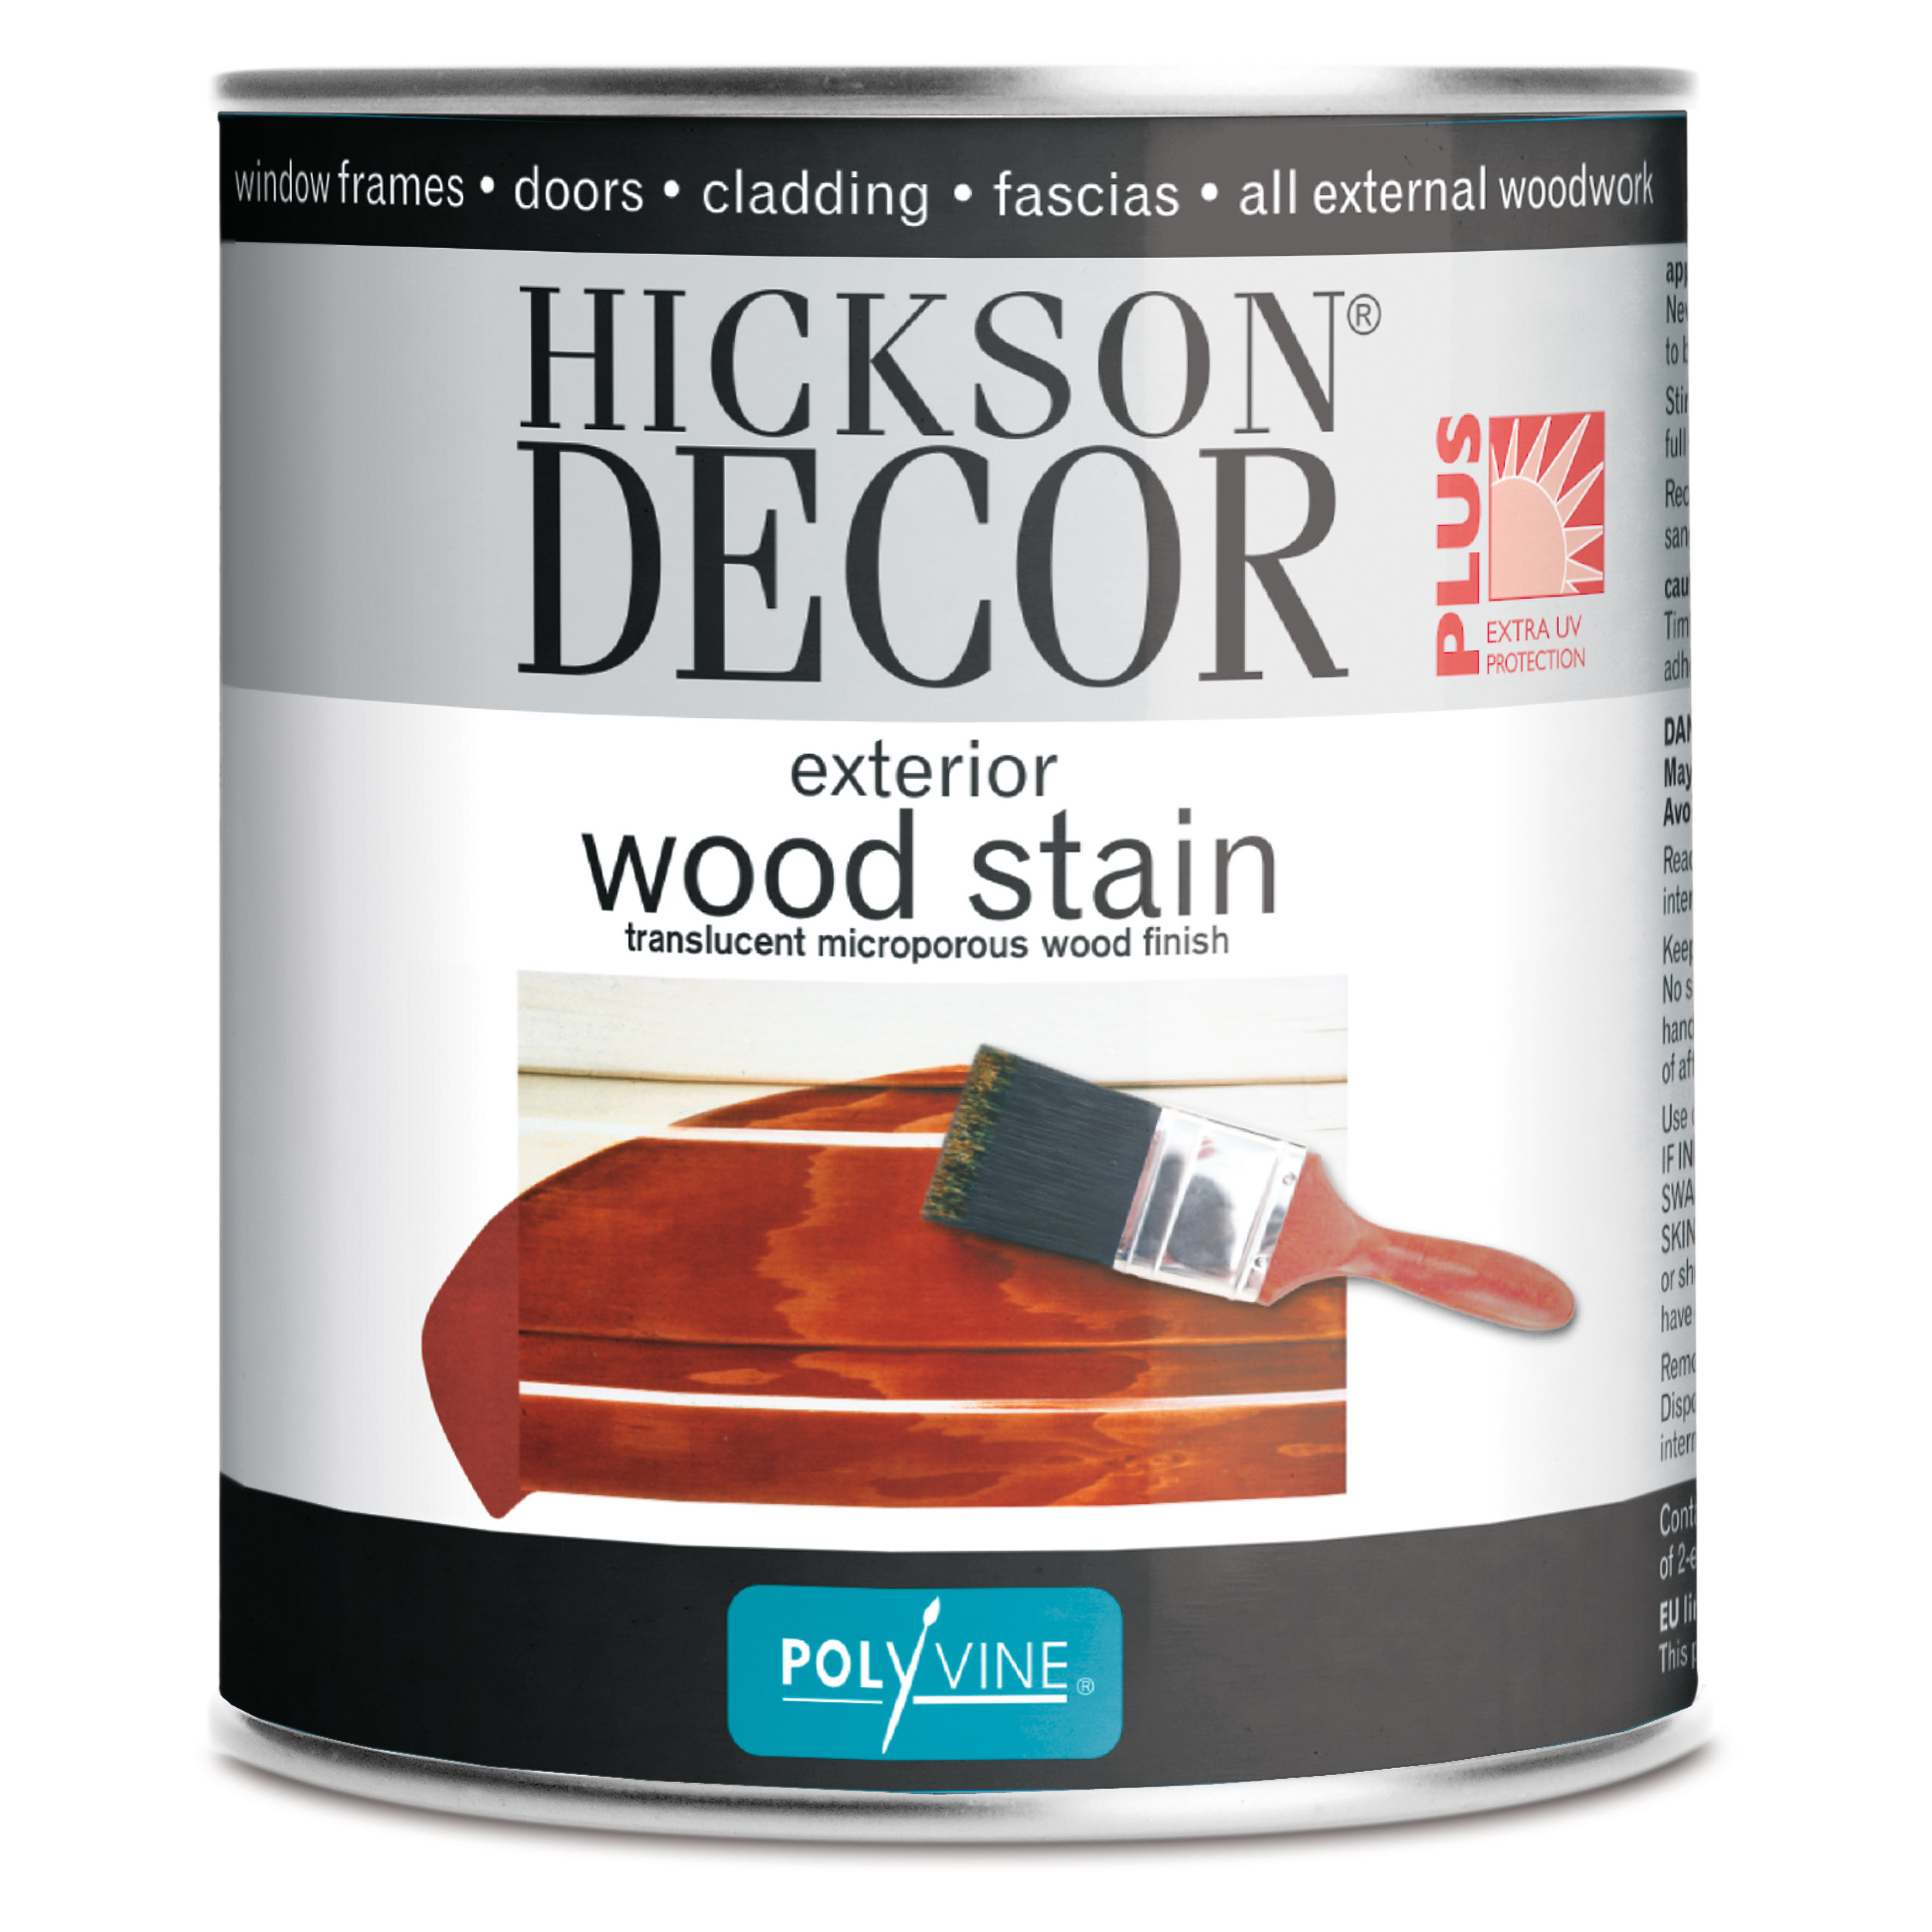 Hickson Decor Wood Stain 500ml (1)